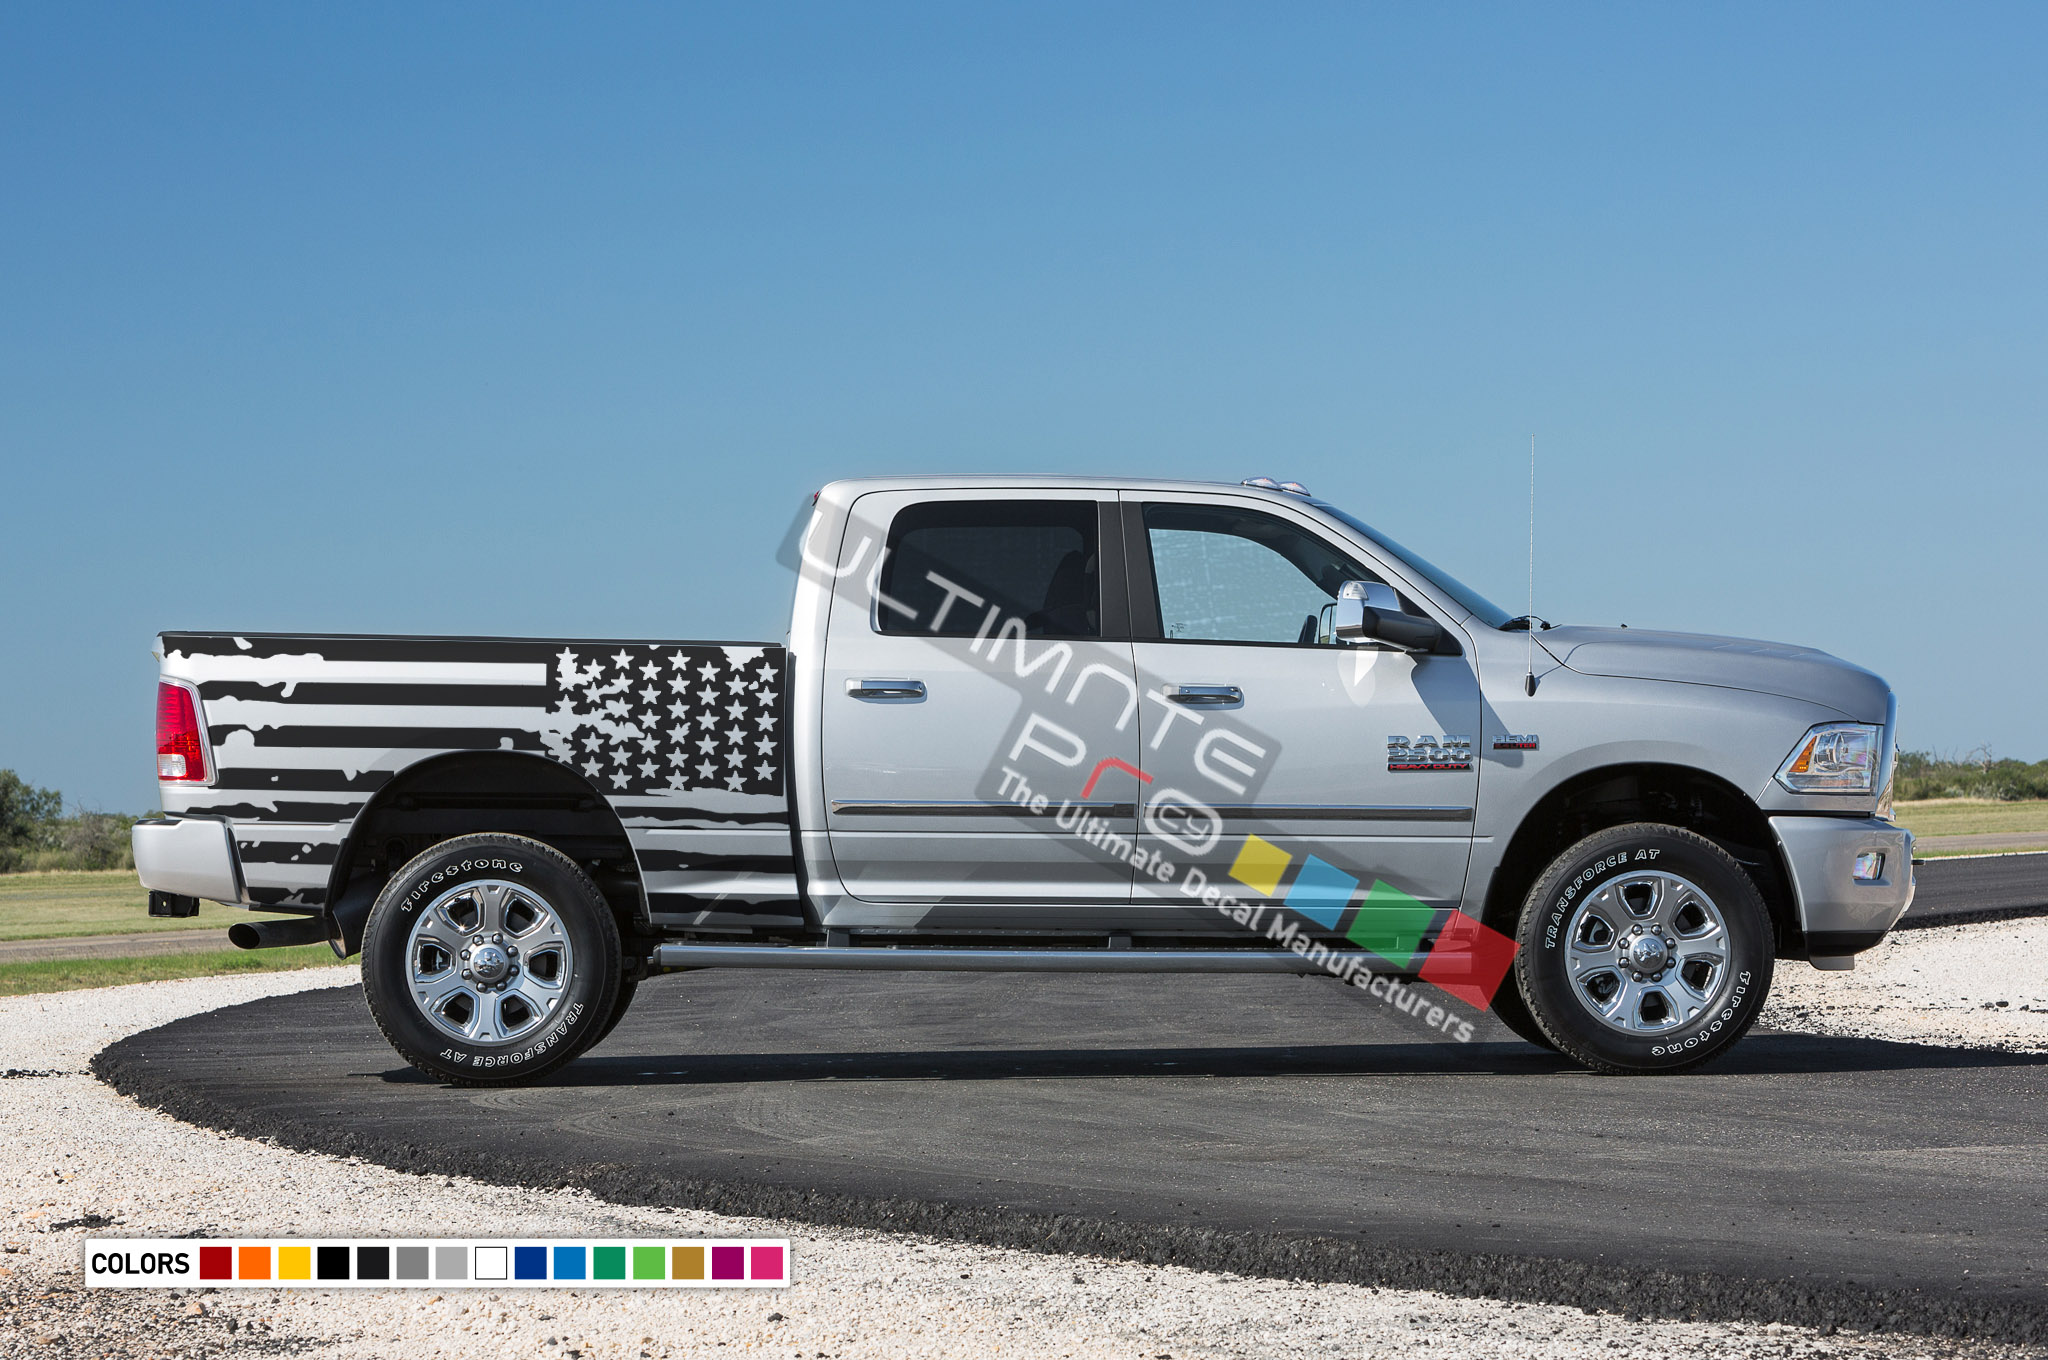 American Flag Decals Tail Sticker Kit Compatible With